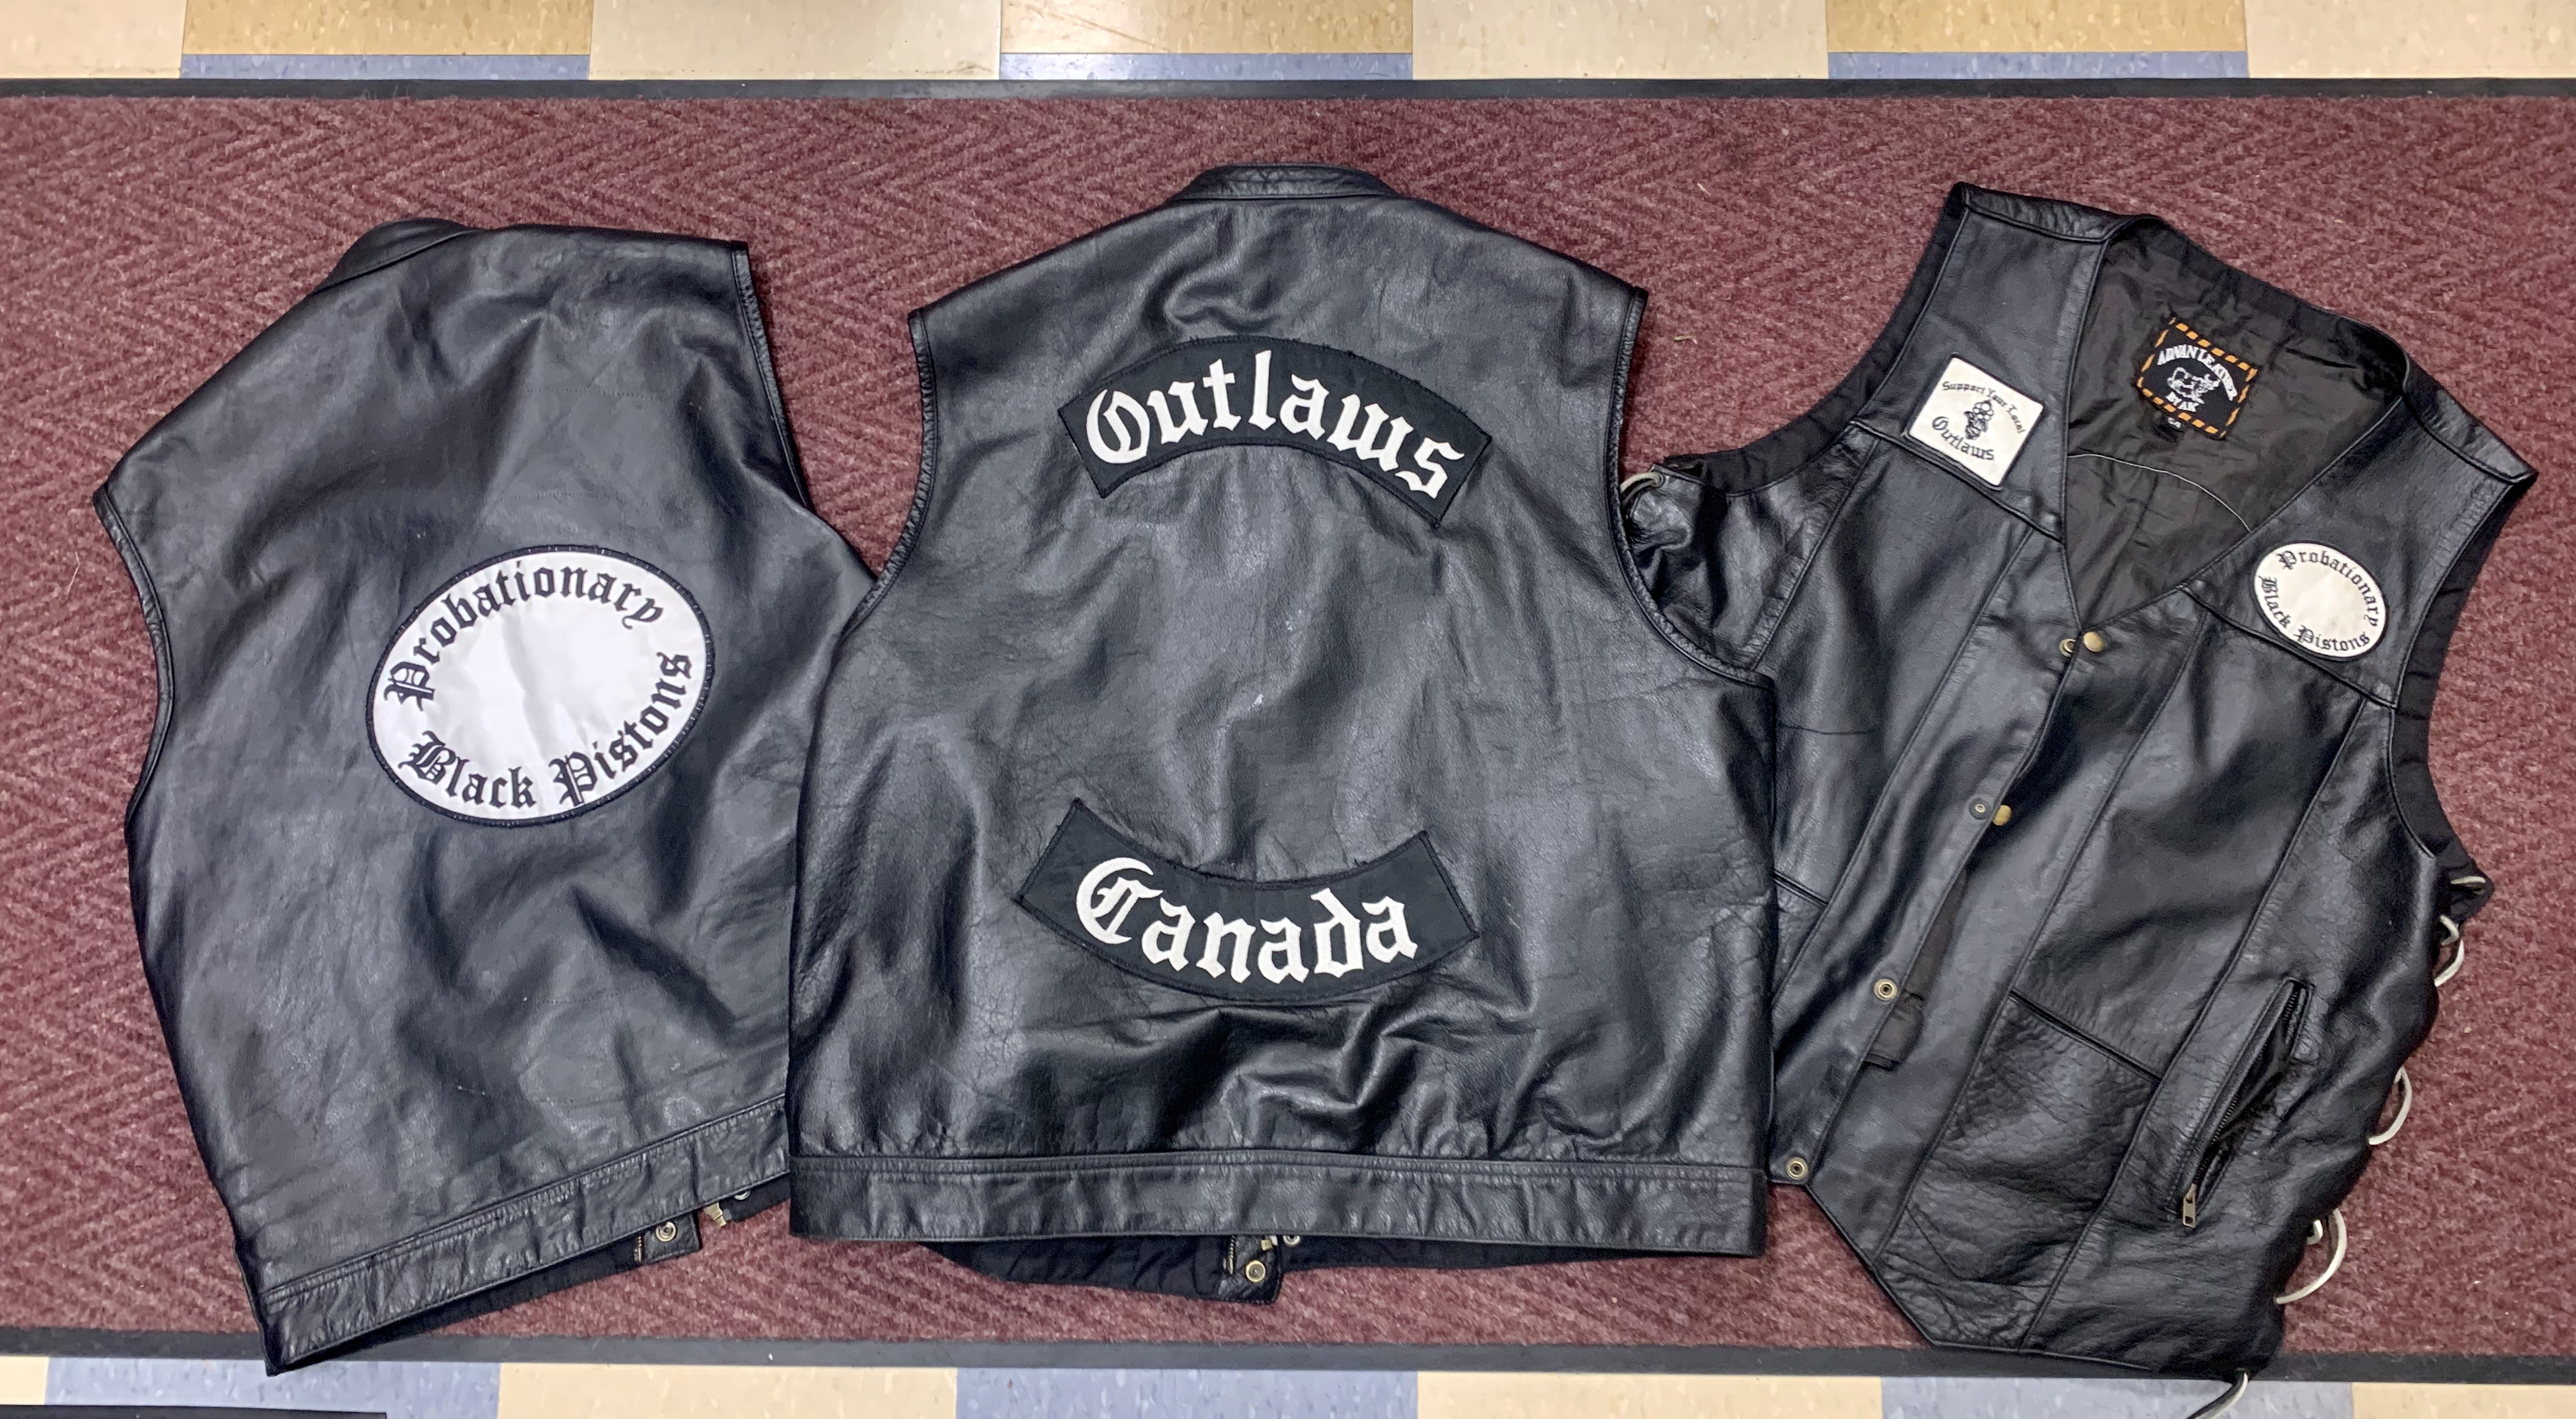 Police seized clothing affiliated with the Black Pistons and Outlaws motorcycle clubs. CONTRIBUTED